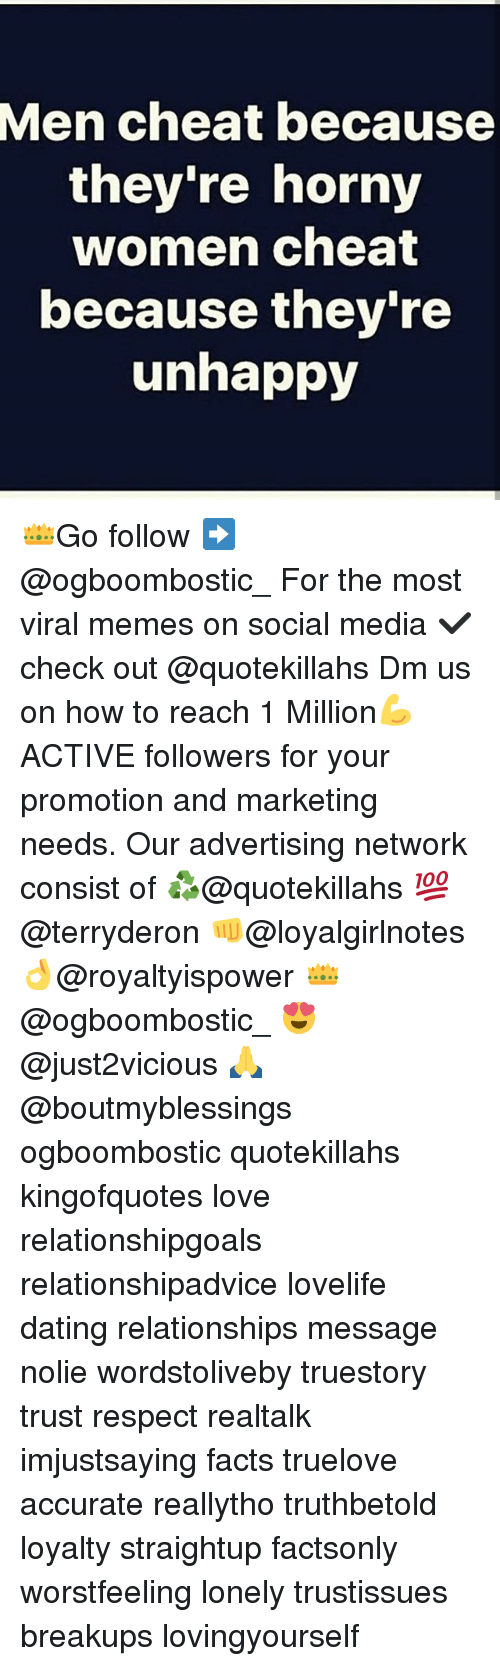 Dating, Facts, and Horny: Men cheat because  they're horny  women cheat  because they're  unhappy 👑Go follow ➡@ogboombostic_ For the most viral memes on social media ✔check out @quotekillahs Dm us on how to reach 1 Million💪ACTIVE followers for your promotion and marketing needs. Our advertising network consist of ♻@quotekillahs 💯@terryderon 👊@loyalgirlnotes 👌@royaltyispower 👑@ogboombostic_ 😍@just2vicious 🙏@boutmyblessings ogboombostic quotekillahs kingofquotes love relationshipgoals relationshipadvice lovelife dating relationships message nolie wordstoliveby truestory trust respect realtalk imjustsaying facts truelove accurate reallytho truthbetold loyalty straightup factsonly worstfeeling lonely trustissues breakups lovingyourself